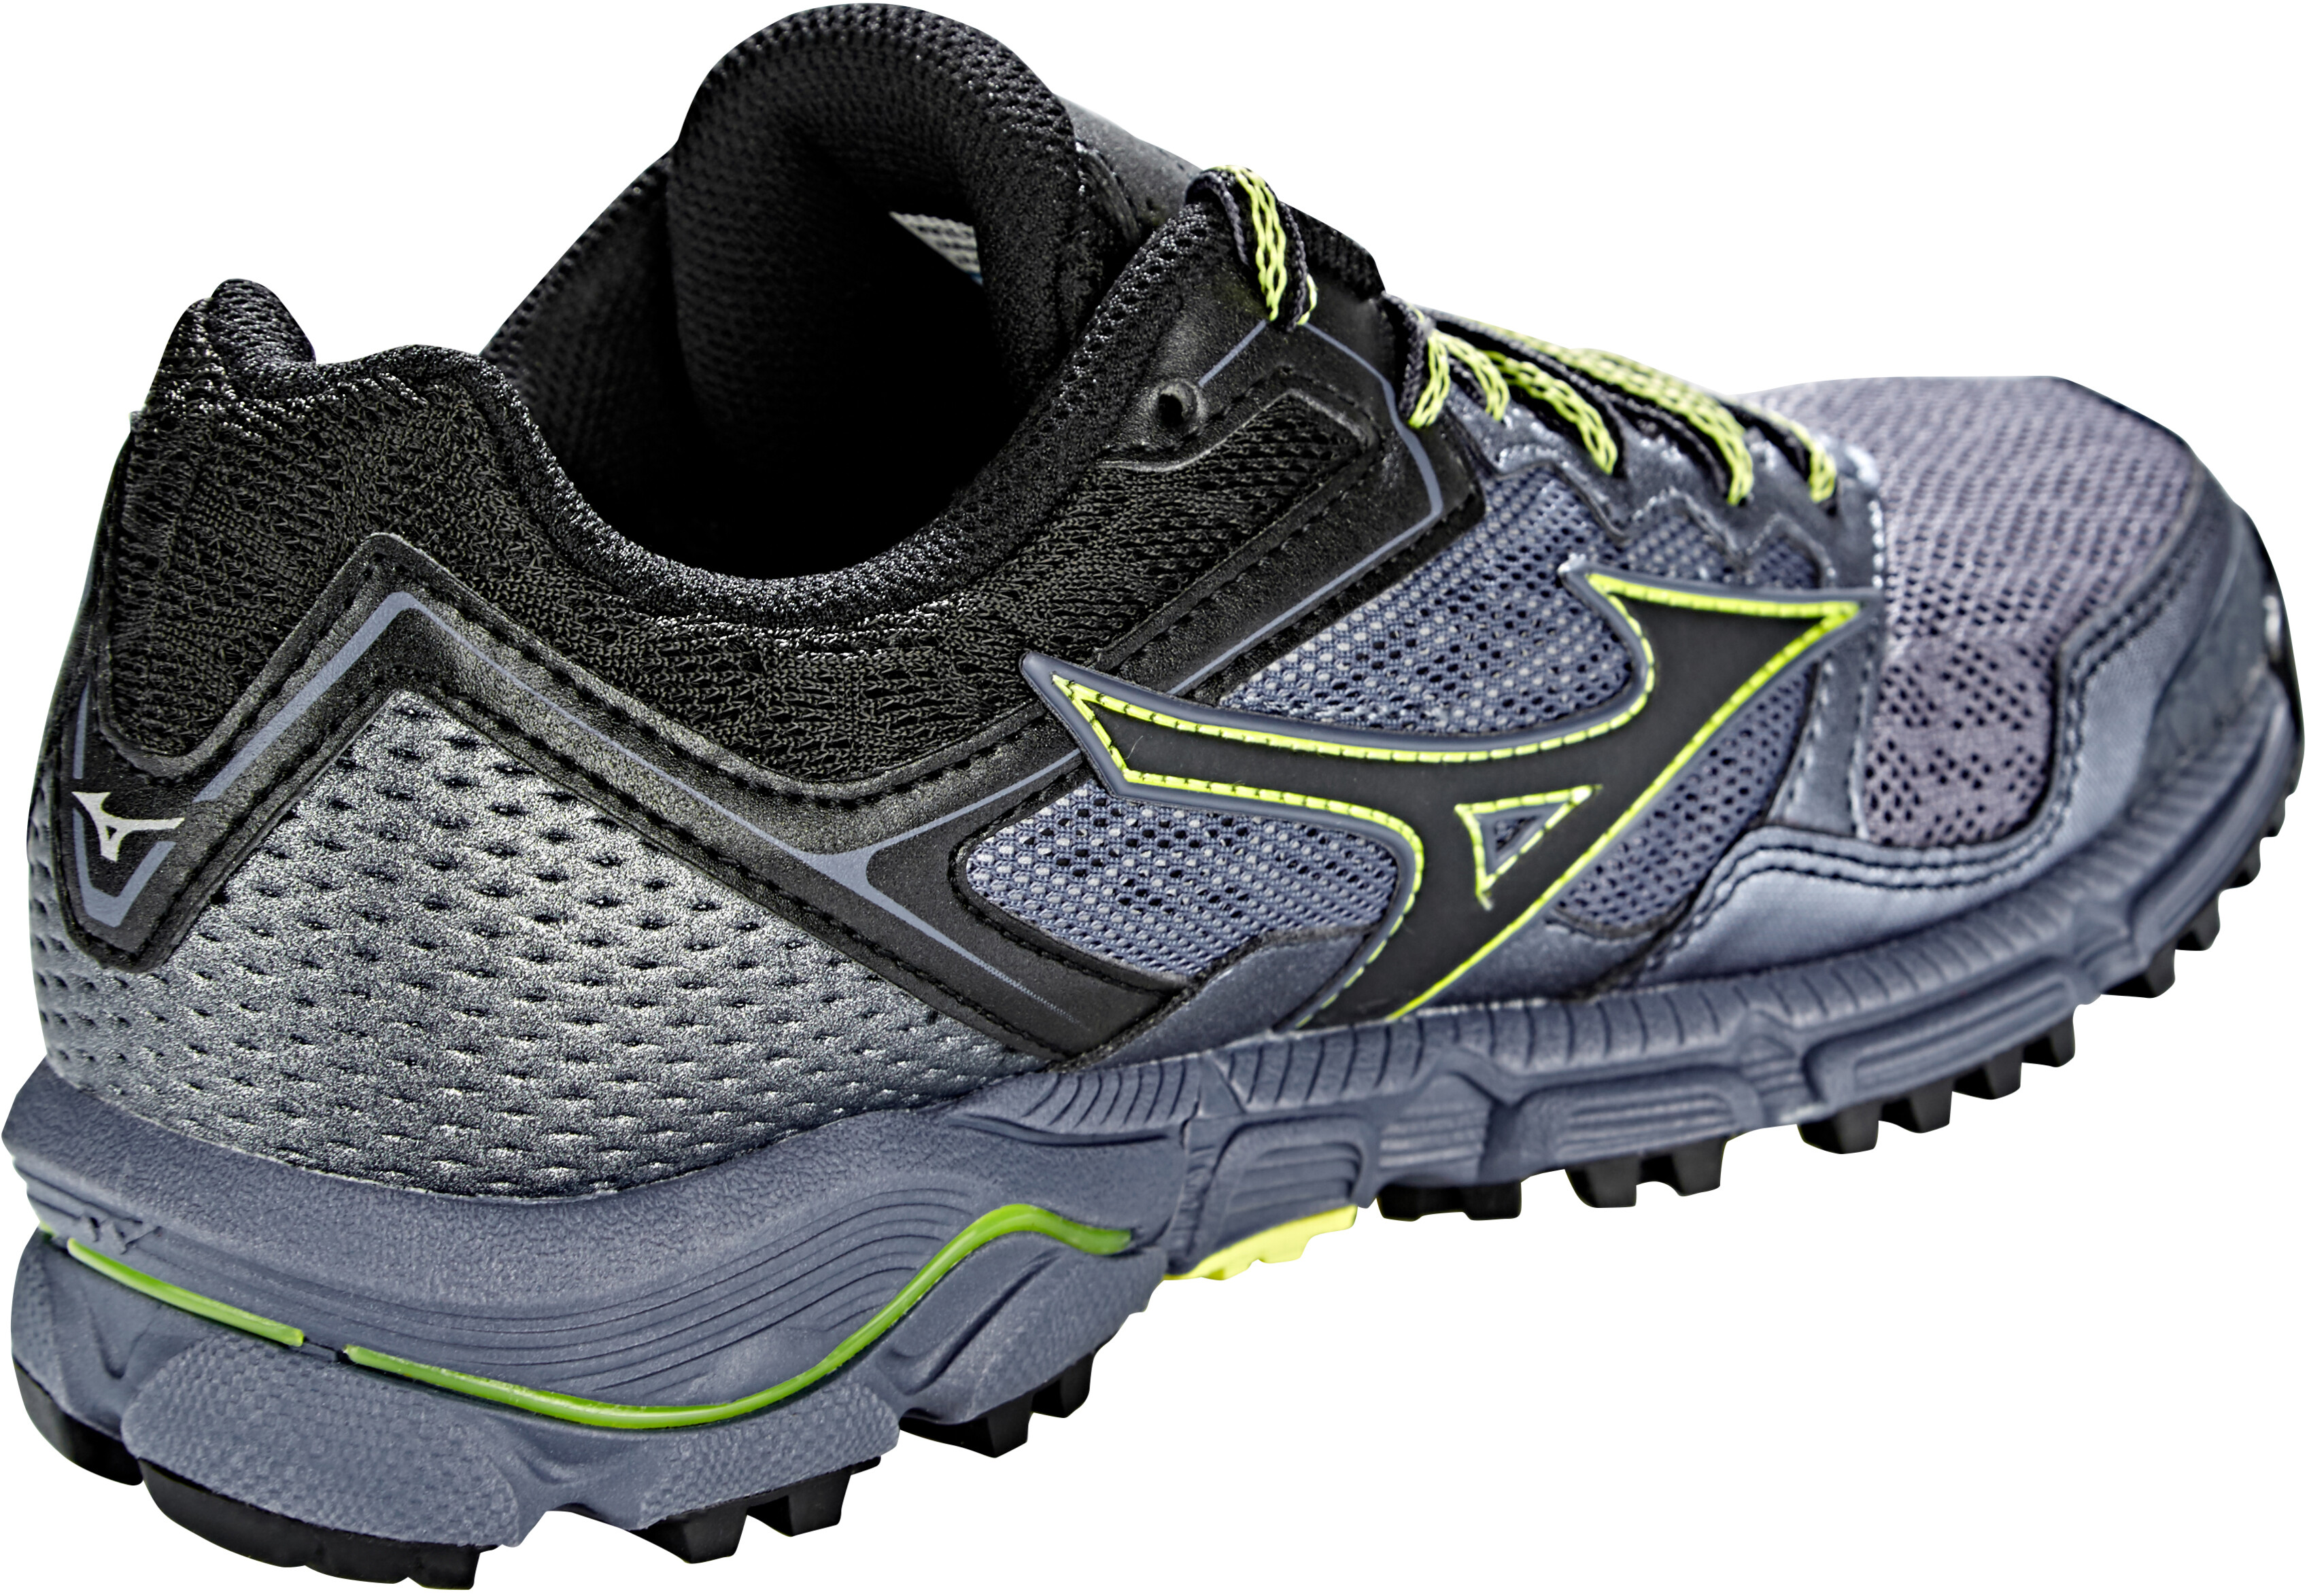 ffbed221cba8 Mizuno Wave Daichi 3 Running Shoes Women grey/black at Addnature.co.uk